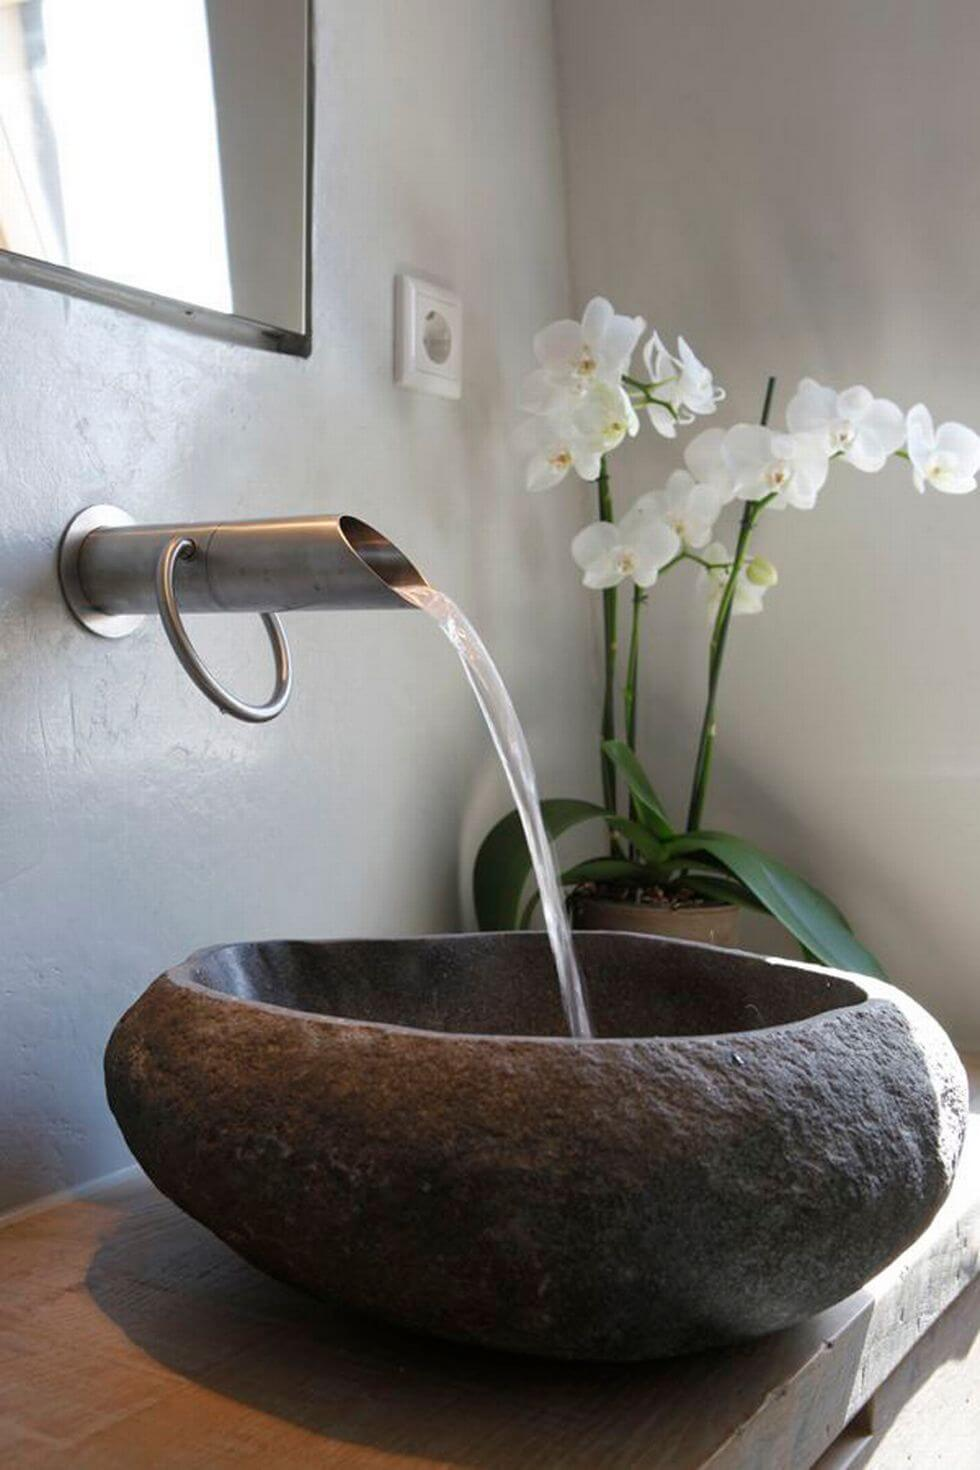 Rustic Sink with Minimalist Features